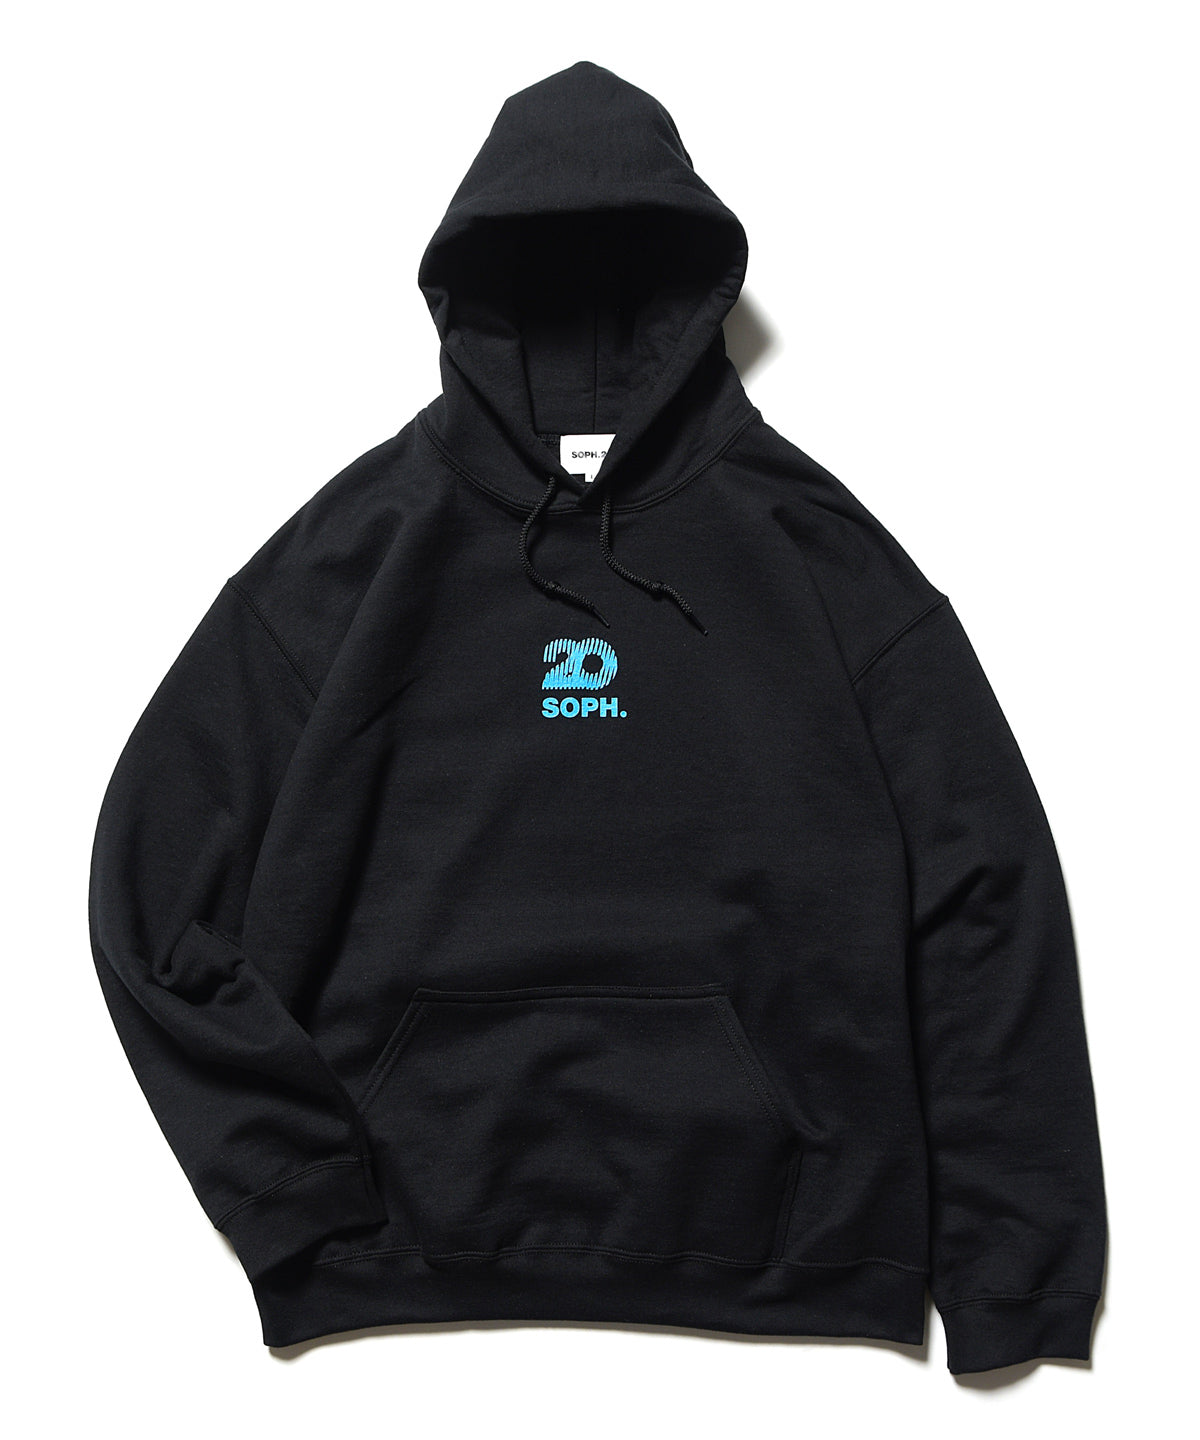 SOPH.20 PULLOVER SWEAT PARKA